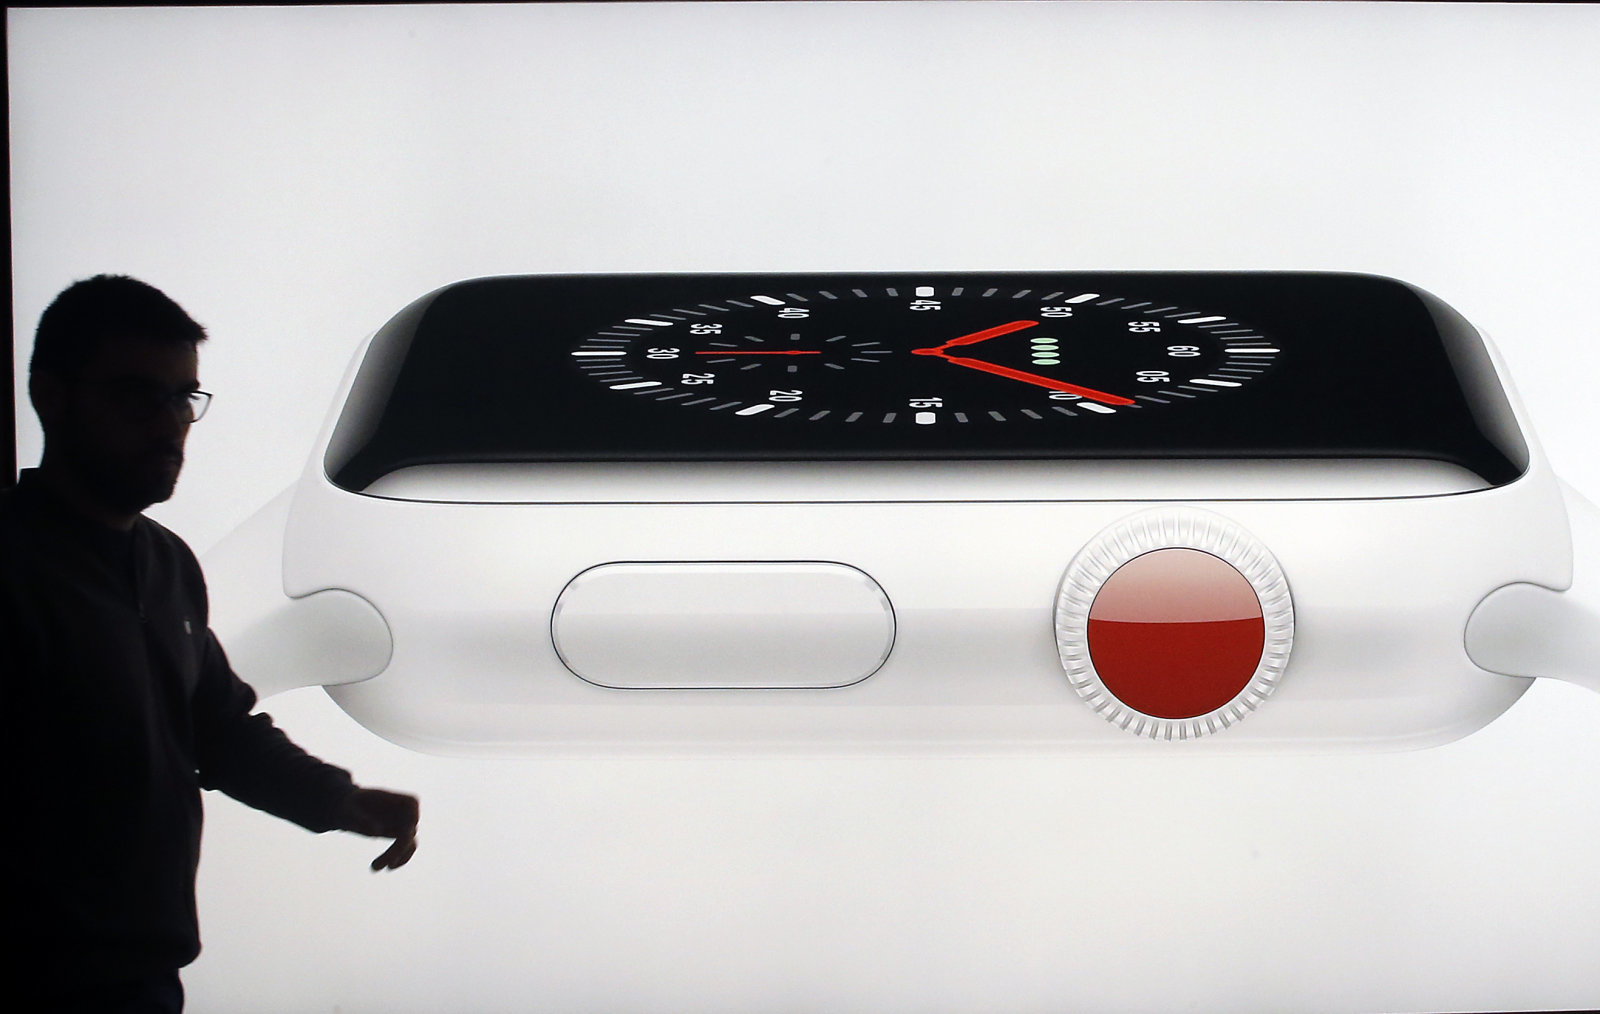 PARIS, FRANCE - NOVEMBER 03:  A signage for an Apple Watch Series 3 is displayed inside the Apple Store Saint-Germain, the day of the launch of the Apple iPhone X, the new model of Apple smartphone at the Apple Store Saint-Germain on November 3, 2017 in Paris, France. Apple's latest iPhone X features face recognition technology, a large 5.8-inch edge-to-edge high resolution OLED display and better front and back cameras with optical image stabilisation.  (Photo by Chesnot/Getty Images)